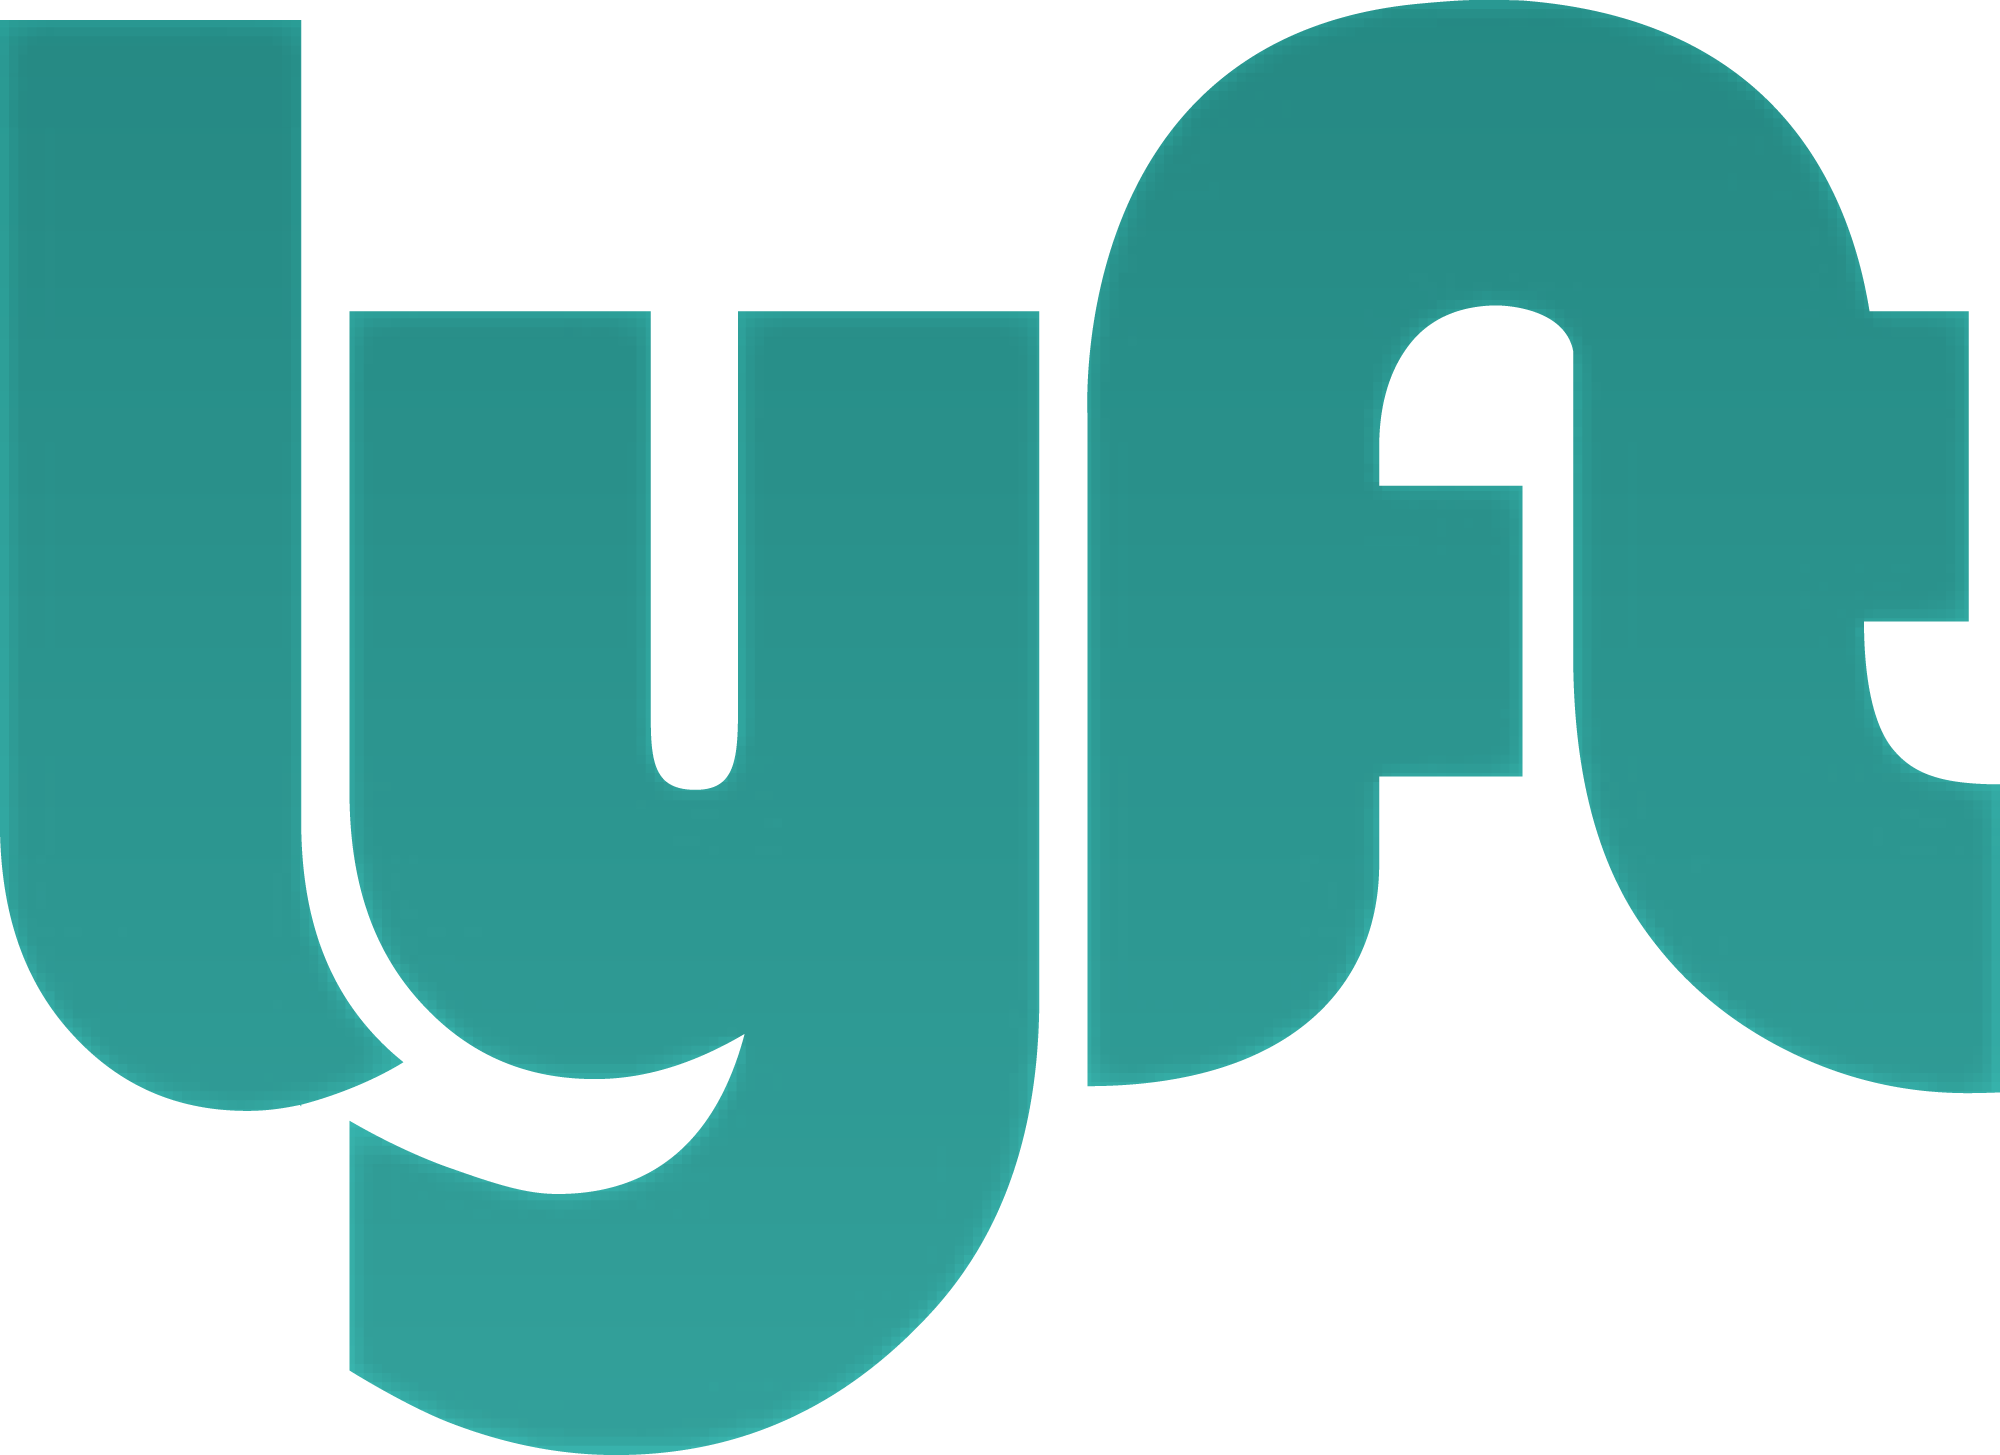 photograph relating to Printable Lyft Sign identified as Printable Lyft Emblem Quotations of the Working day